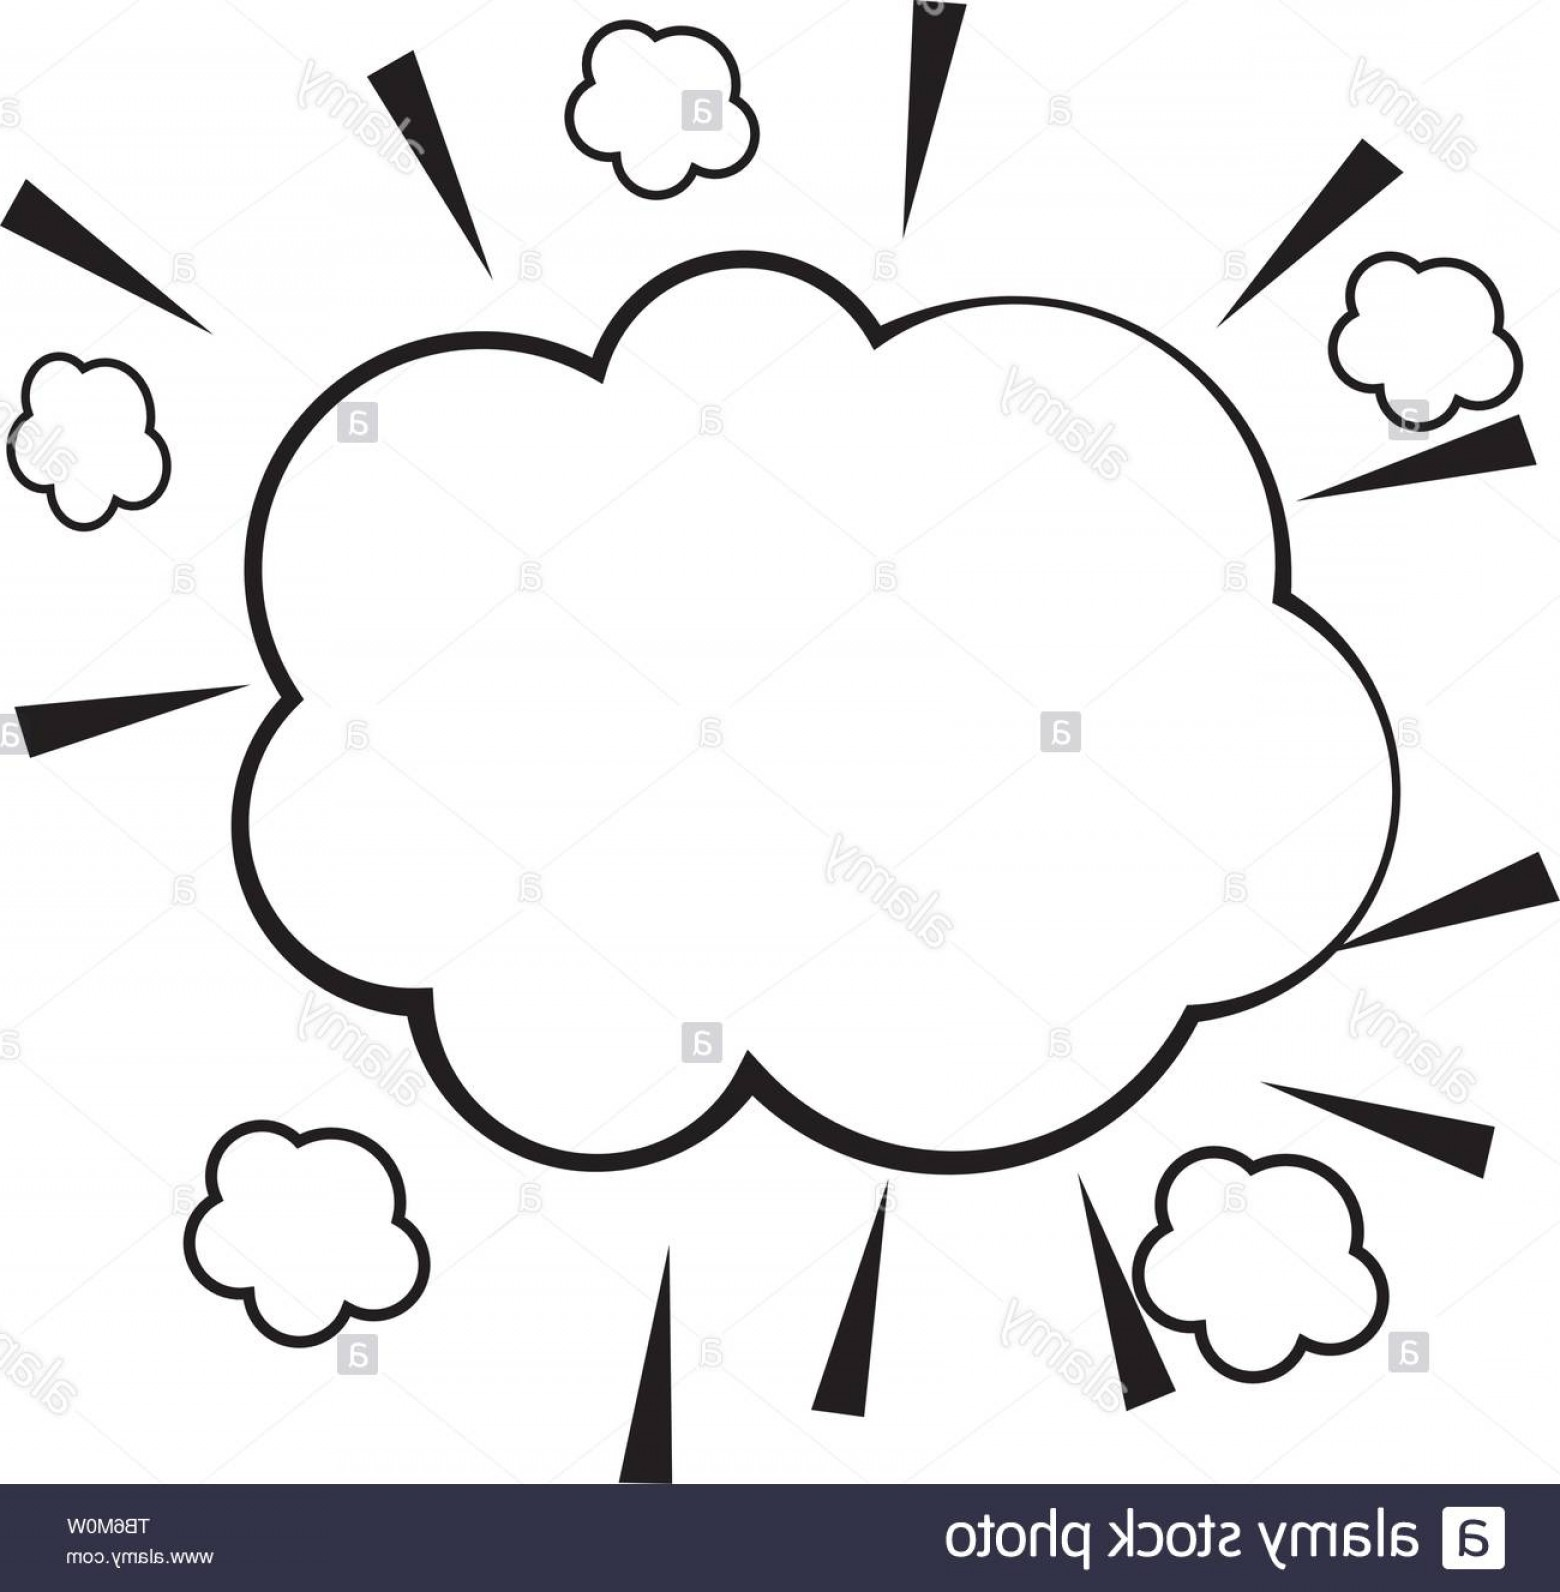 Vector Art Black And White Bubbles: Explosion Speech Bubbles Pop Art Comic Cartoon Vector Illustration In Black And White Image